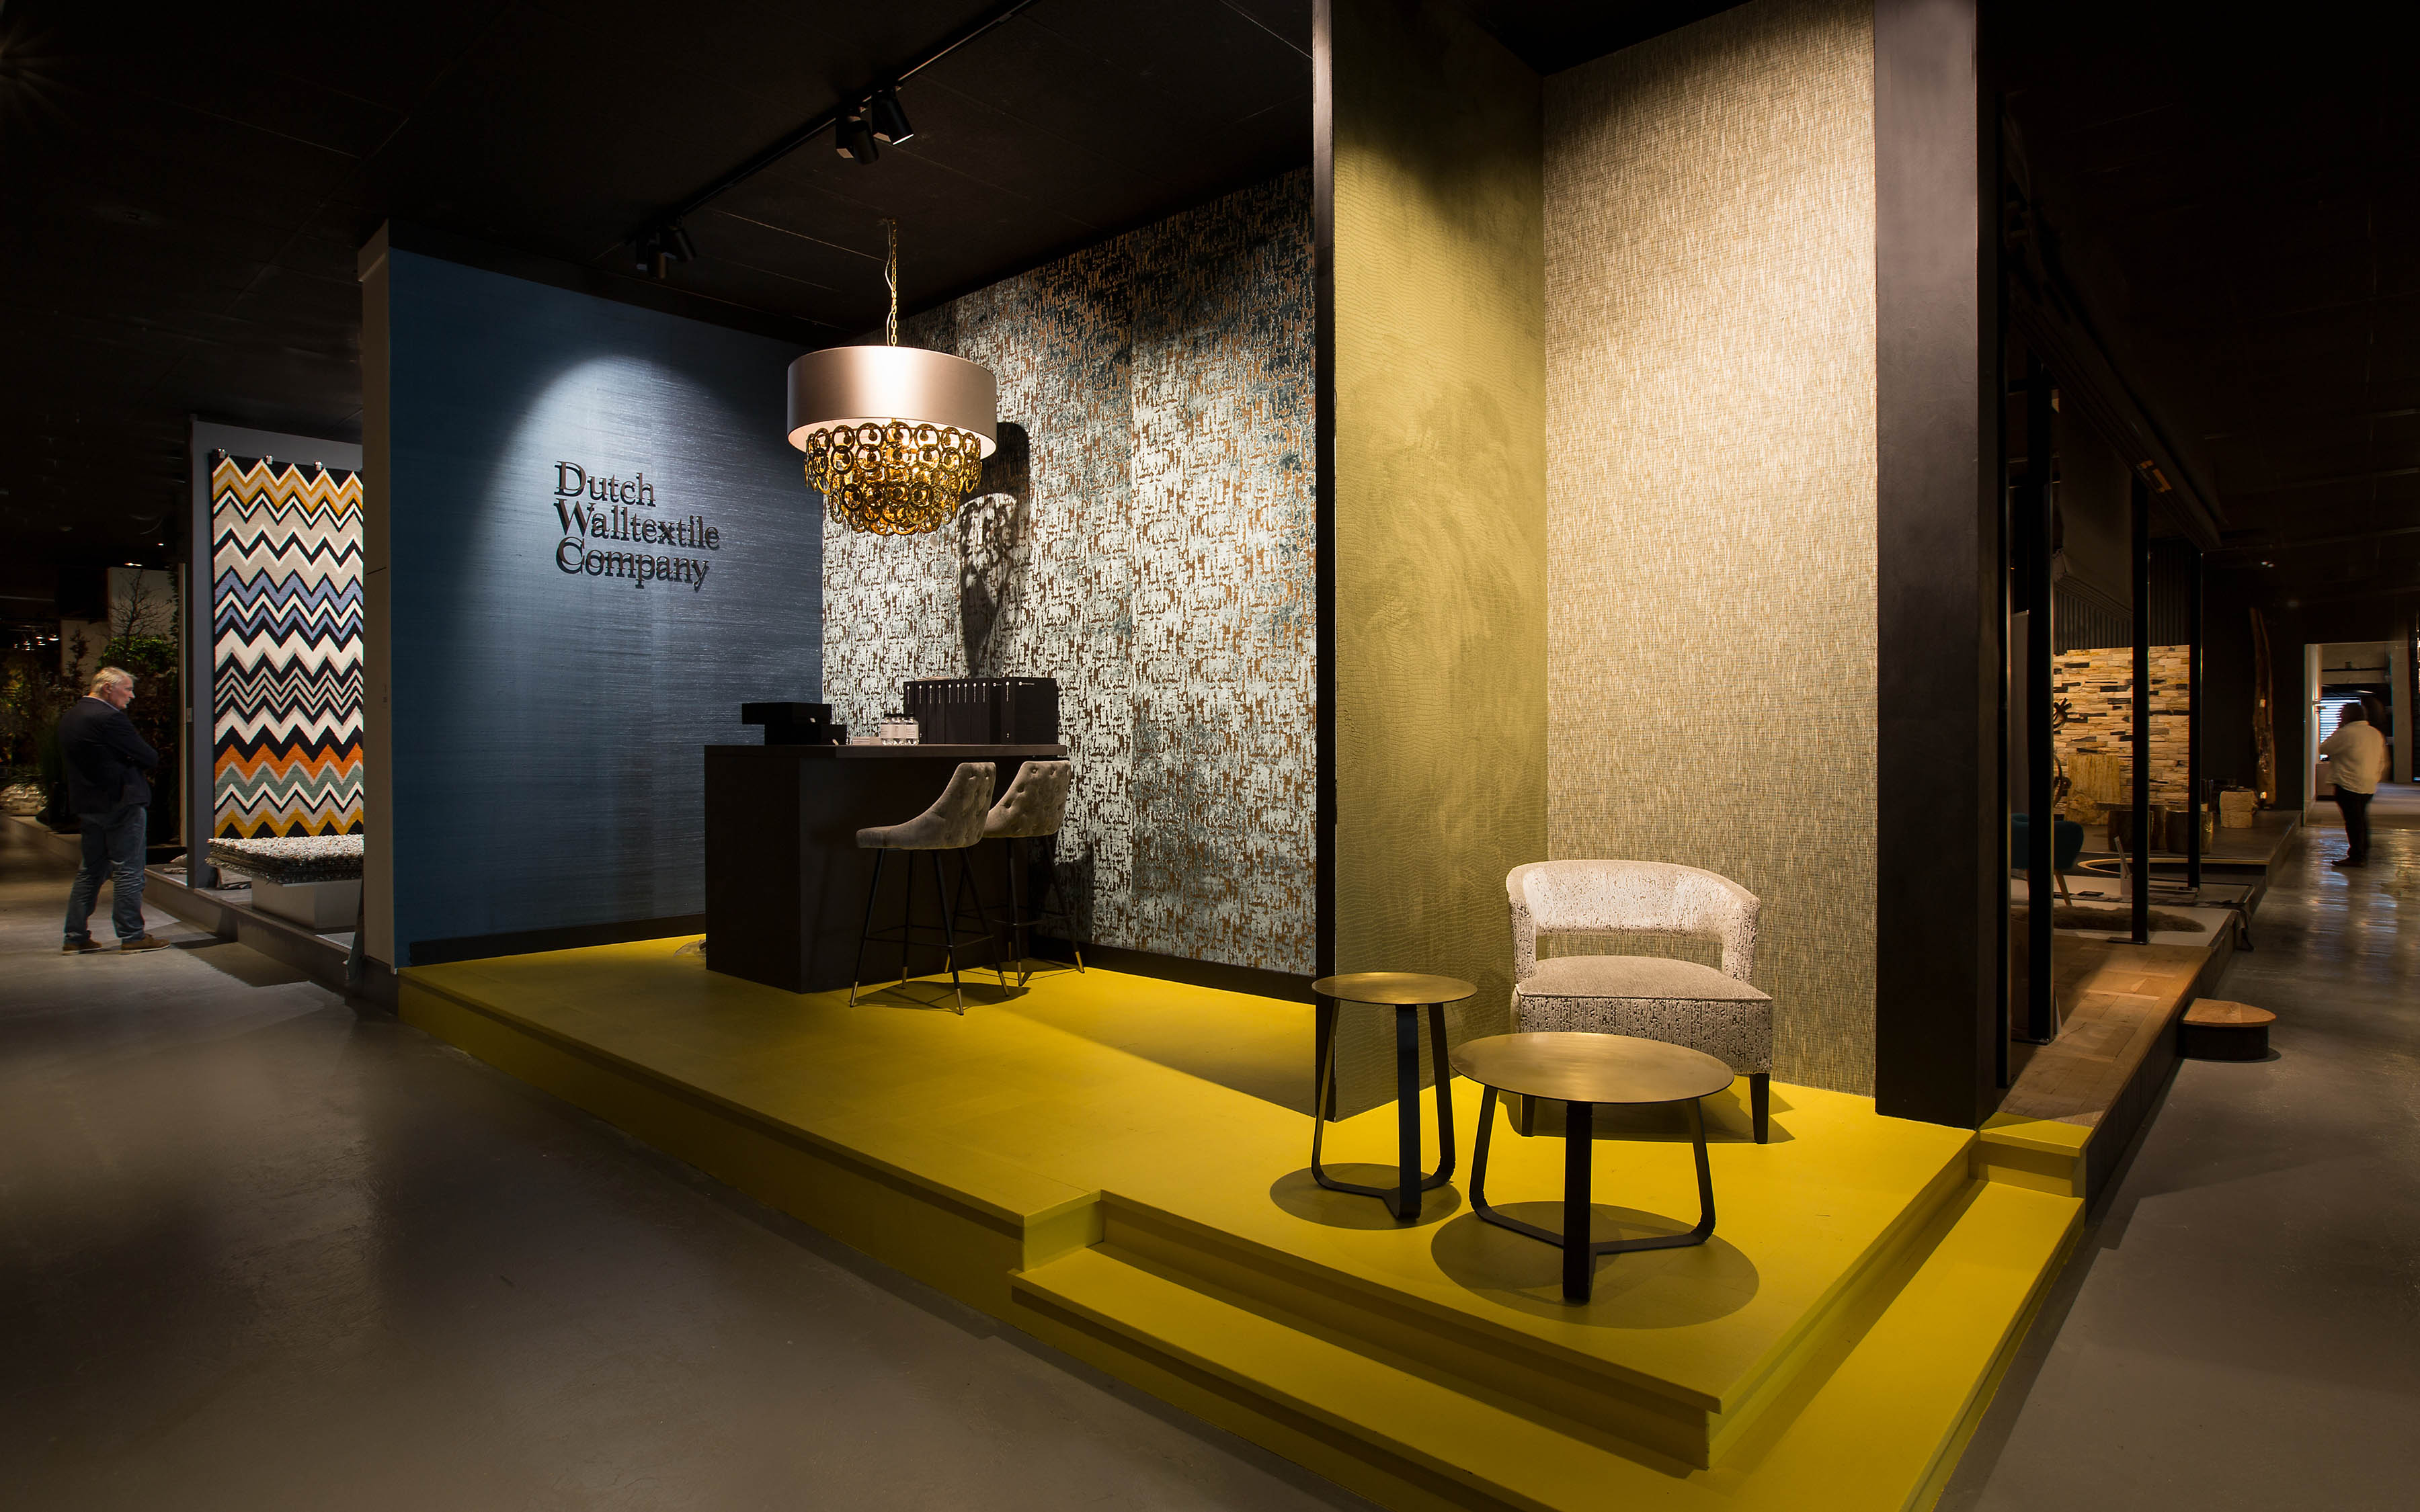 The Dutch Walltextile Company Showroom and ETC Design Centre Europe